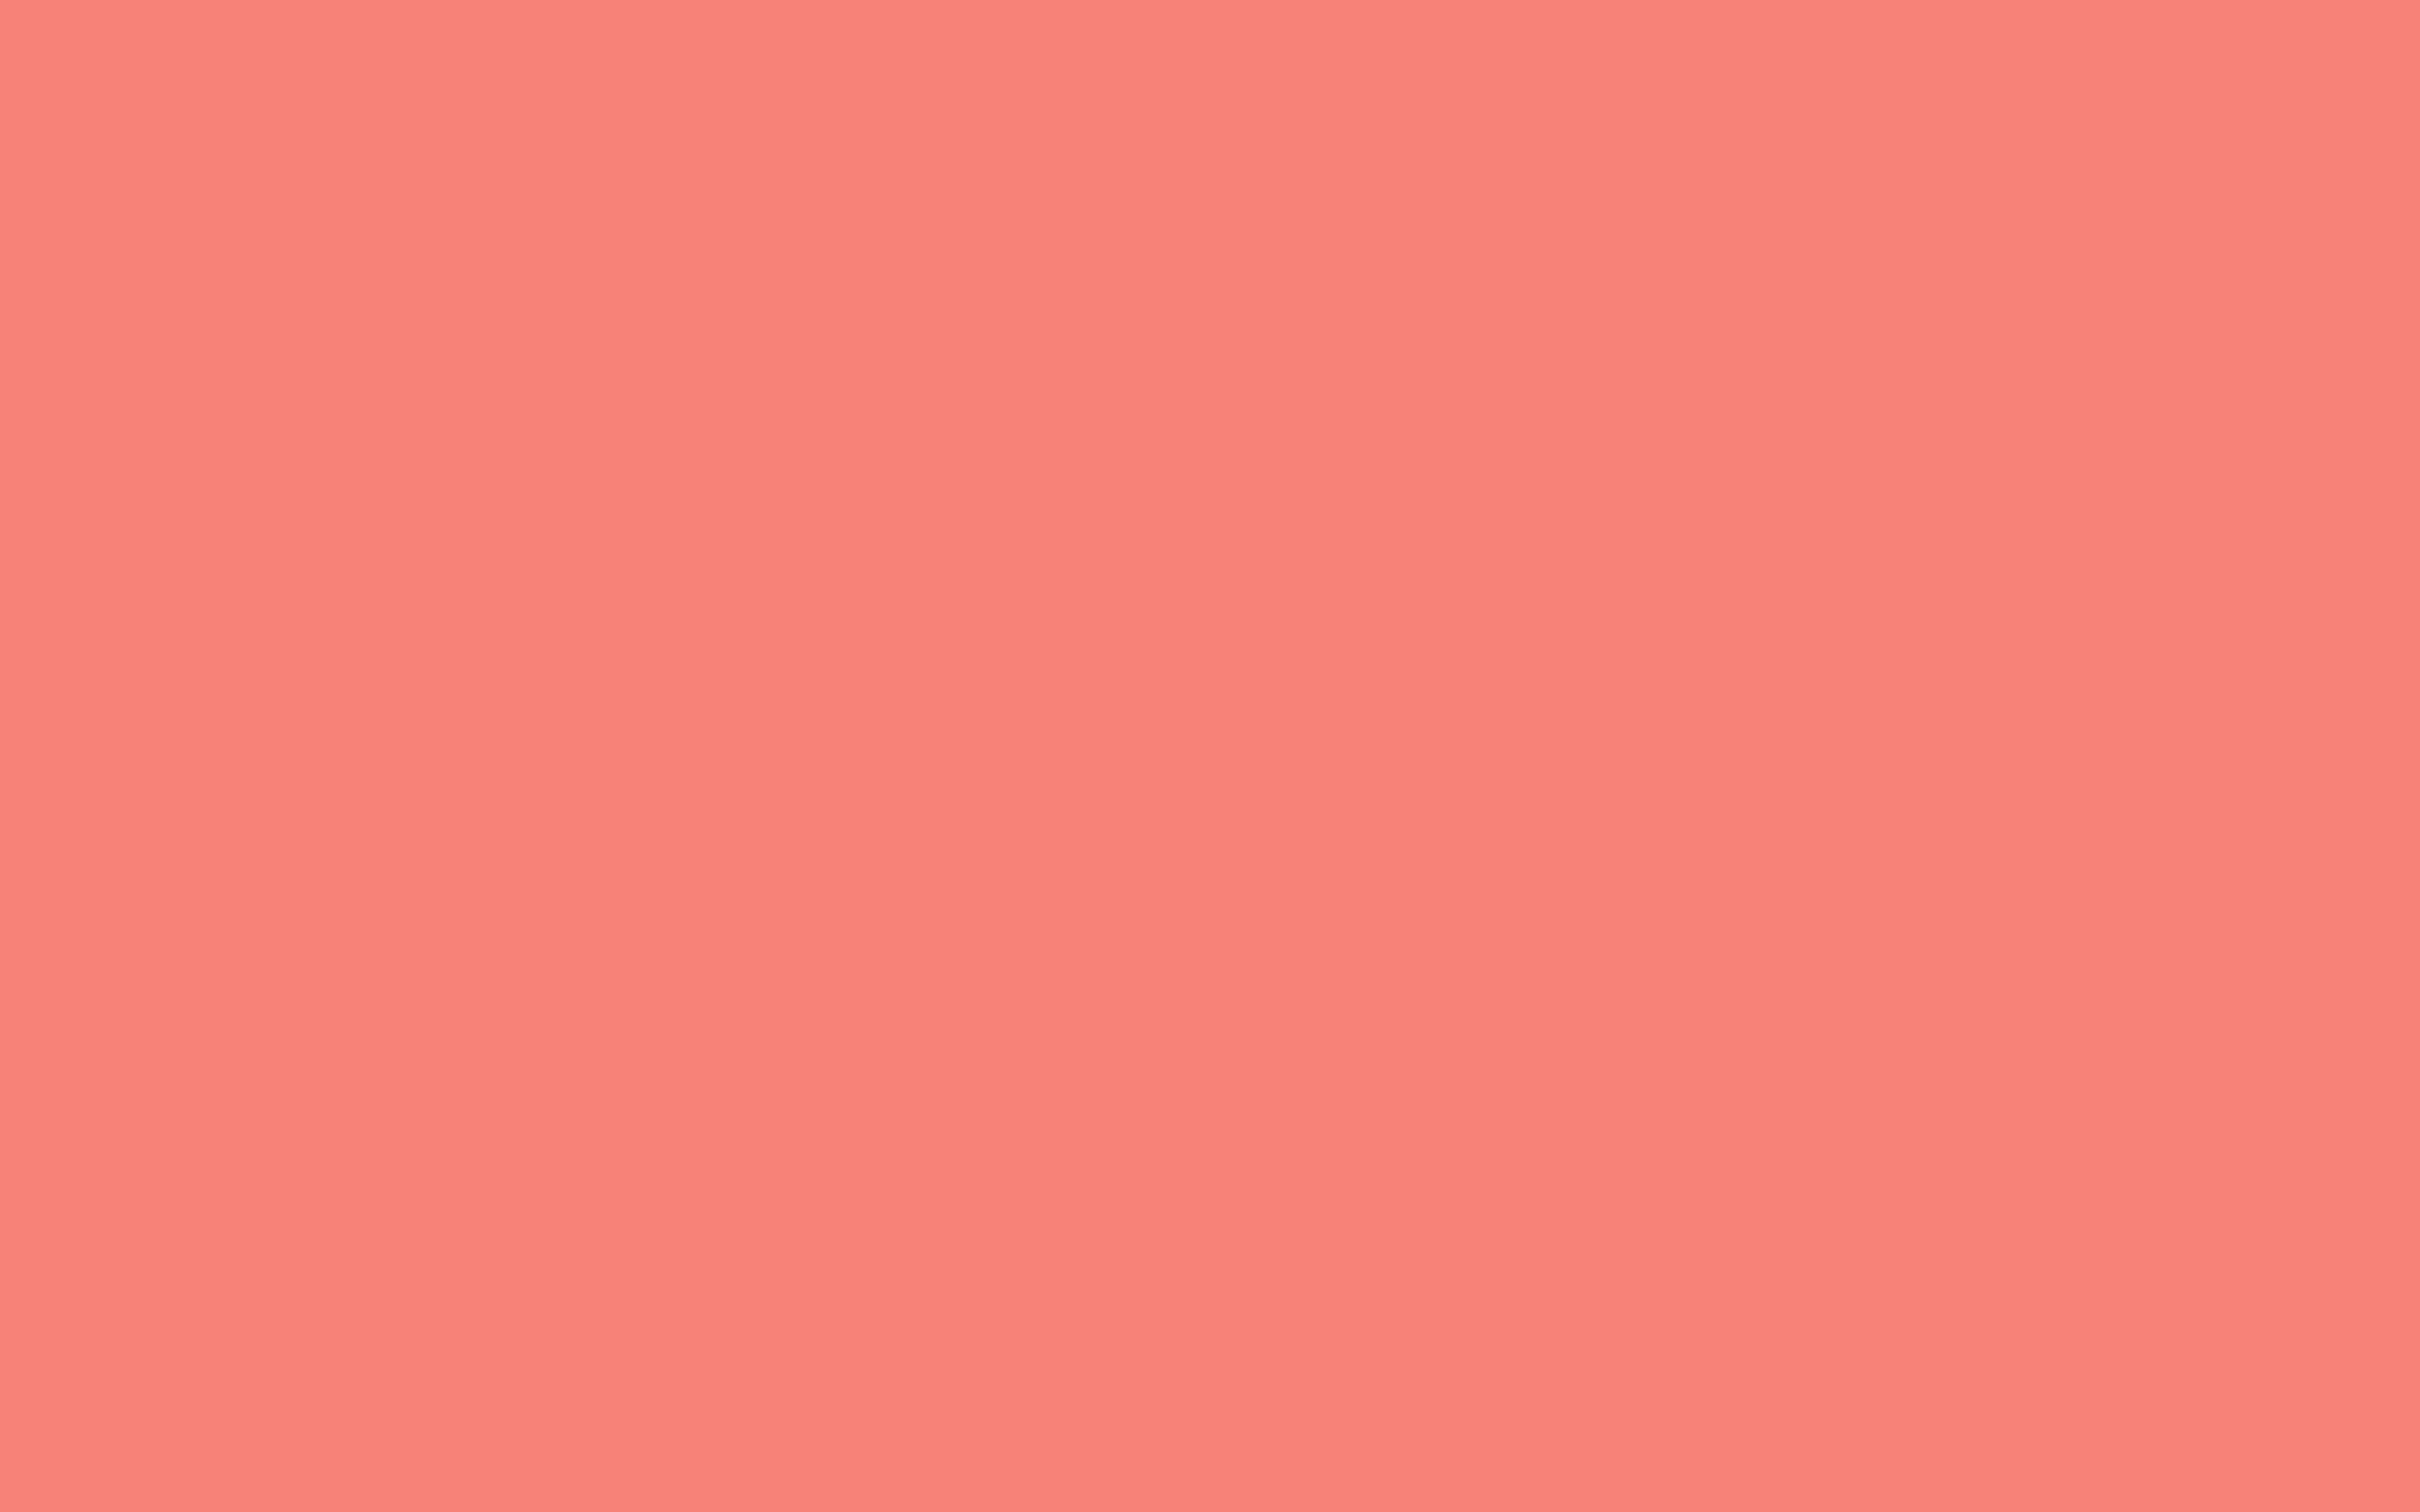 2880x1800 Congo Pink Solid Color Background